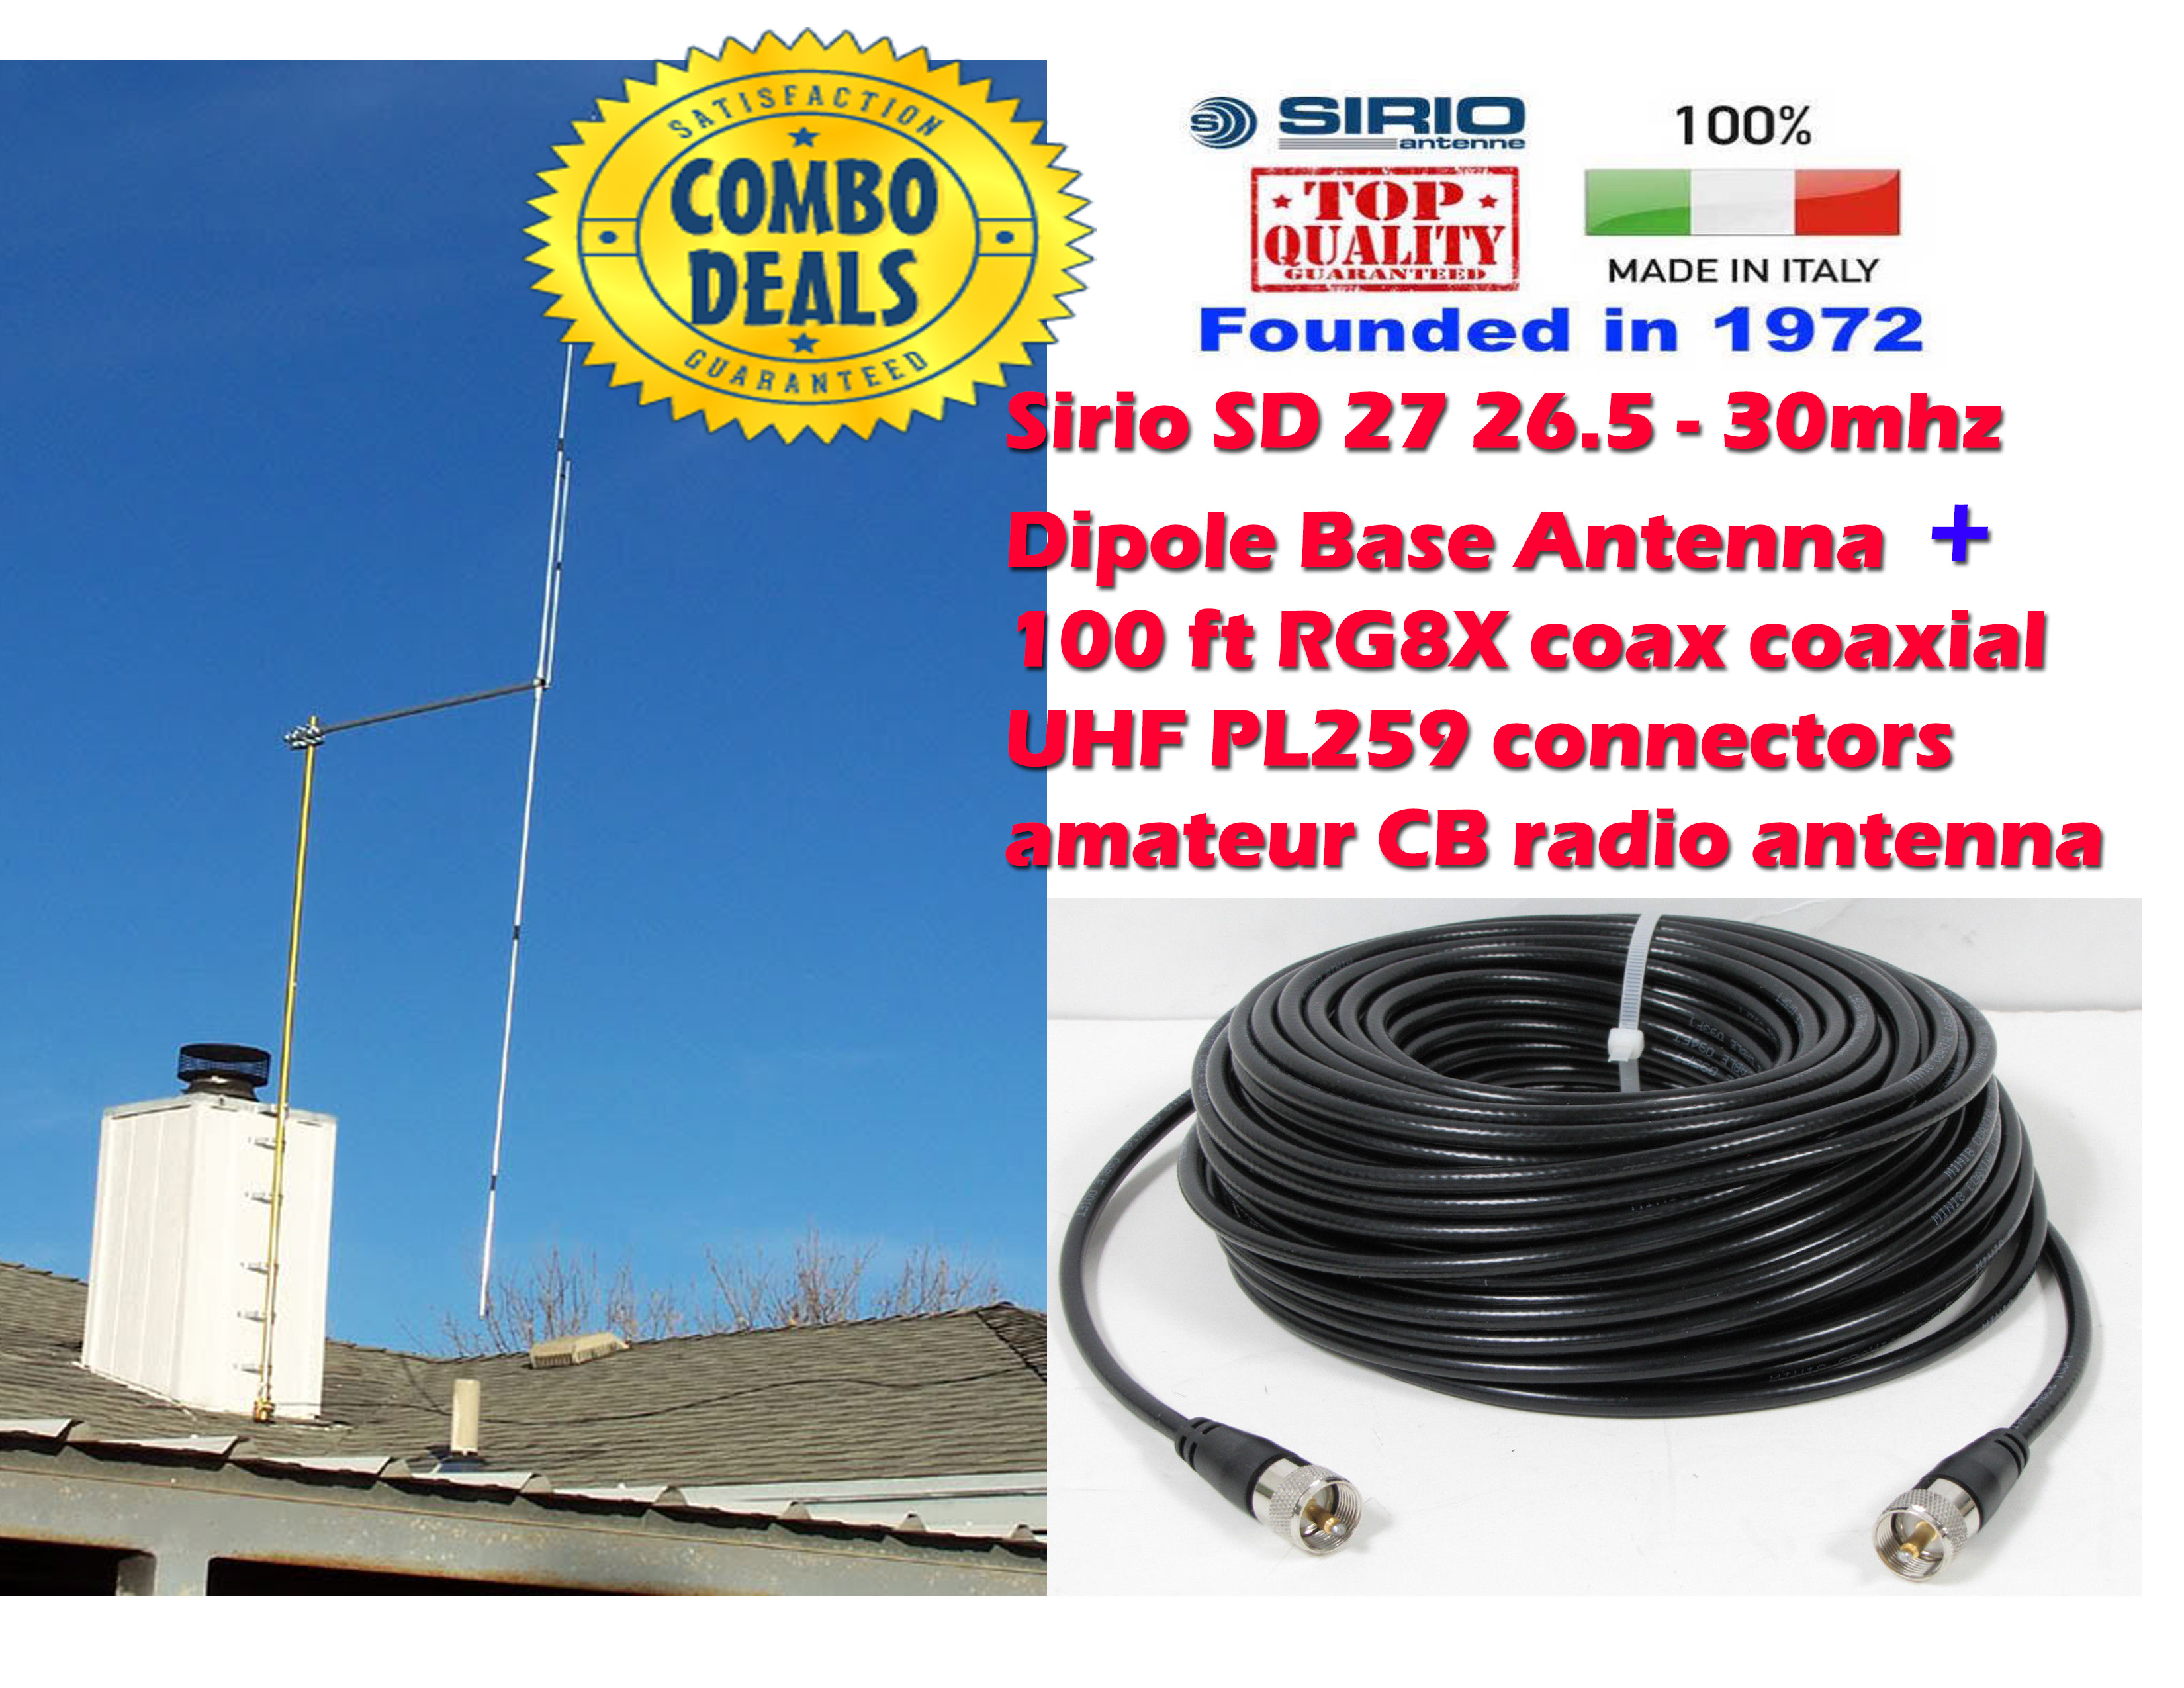 Sirio SD 27 26.5-30mhz 10M-HAM Dipole Base Antenna + 100 ft Coax